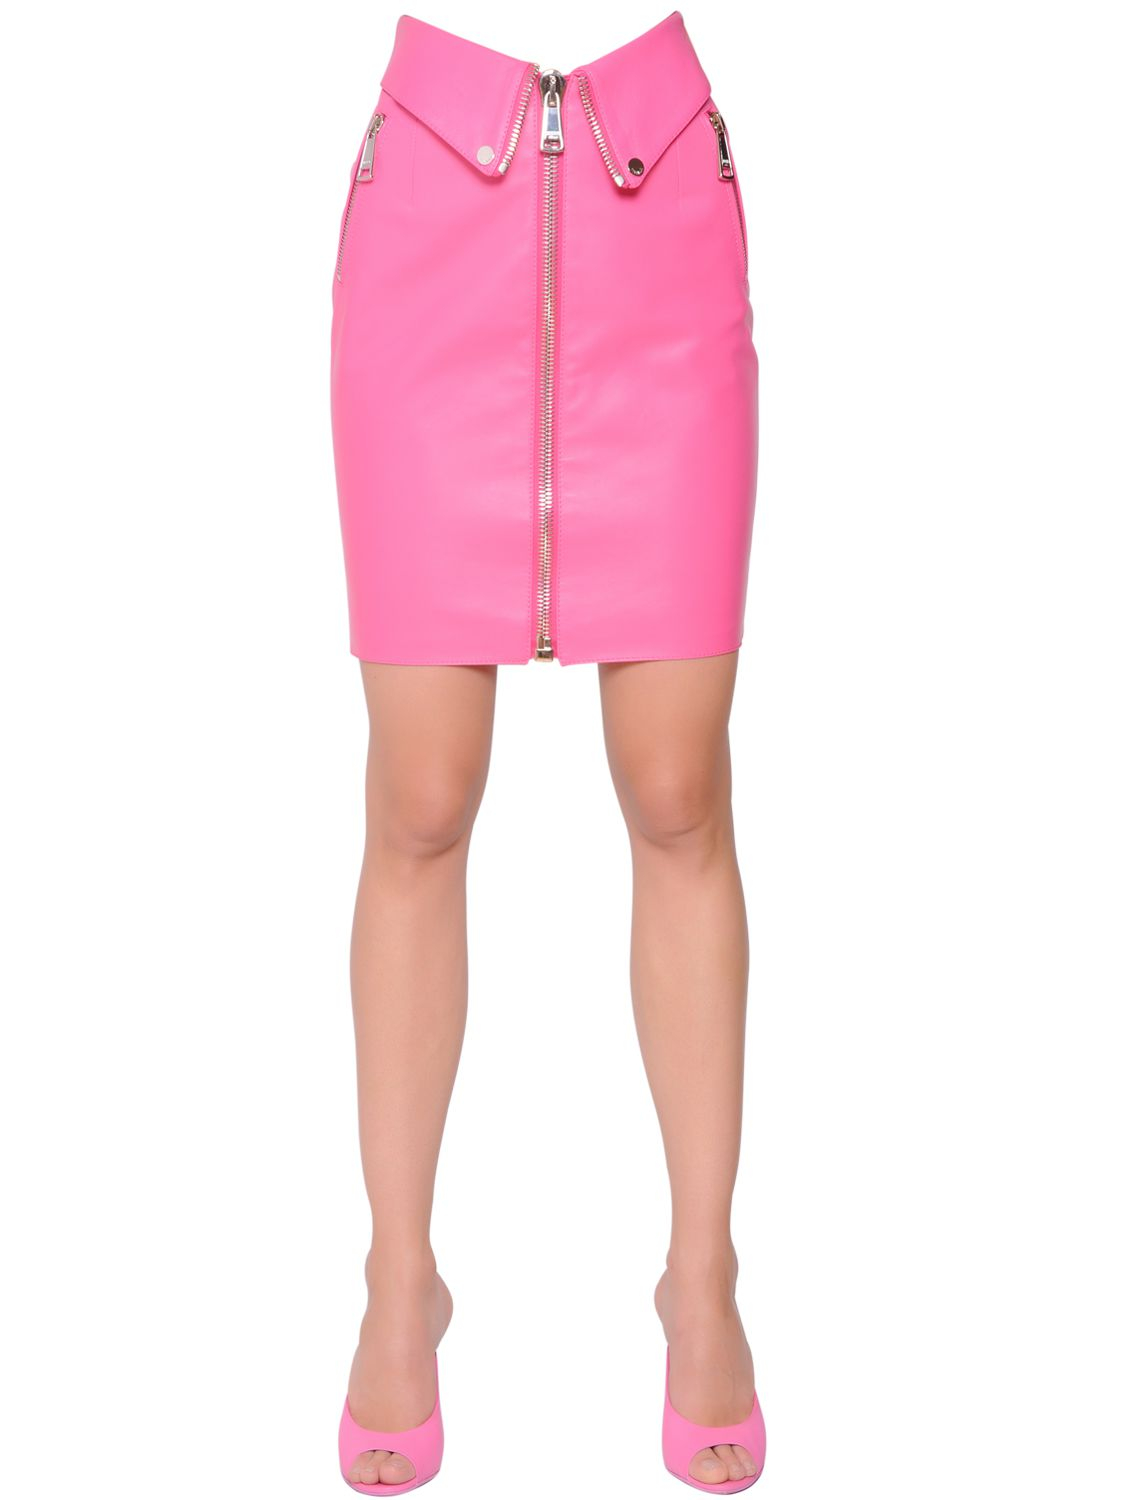 Neon in the workplace: nude cardigan, white tank, neon pink pencil skirt and orange heels. Find this Pin and more on Think Pink!When You Shop for Summer Clothes by Elle Keck. pink pencil skirt and khaki cardigan. dsquared resort collection by info.